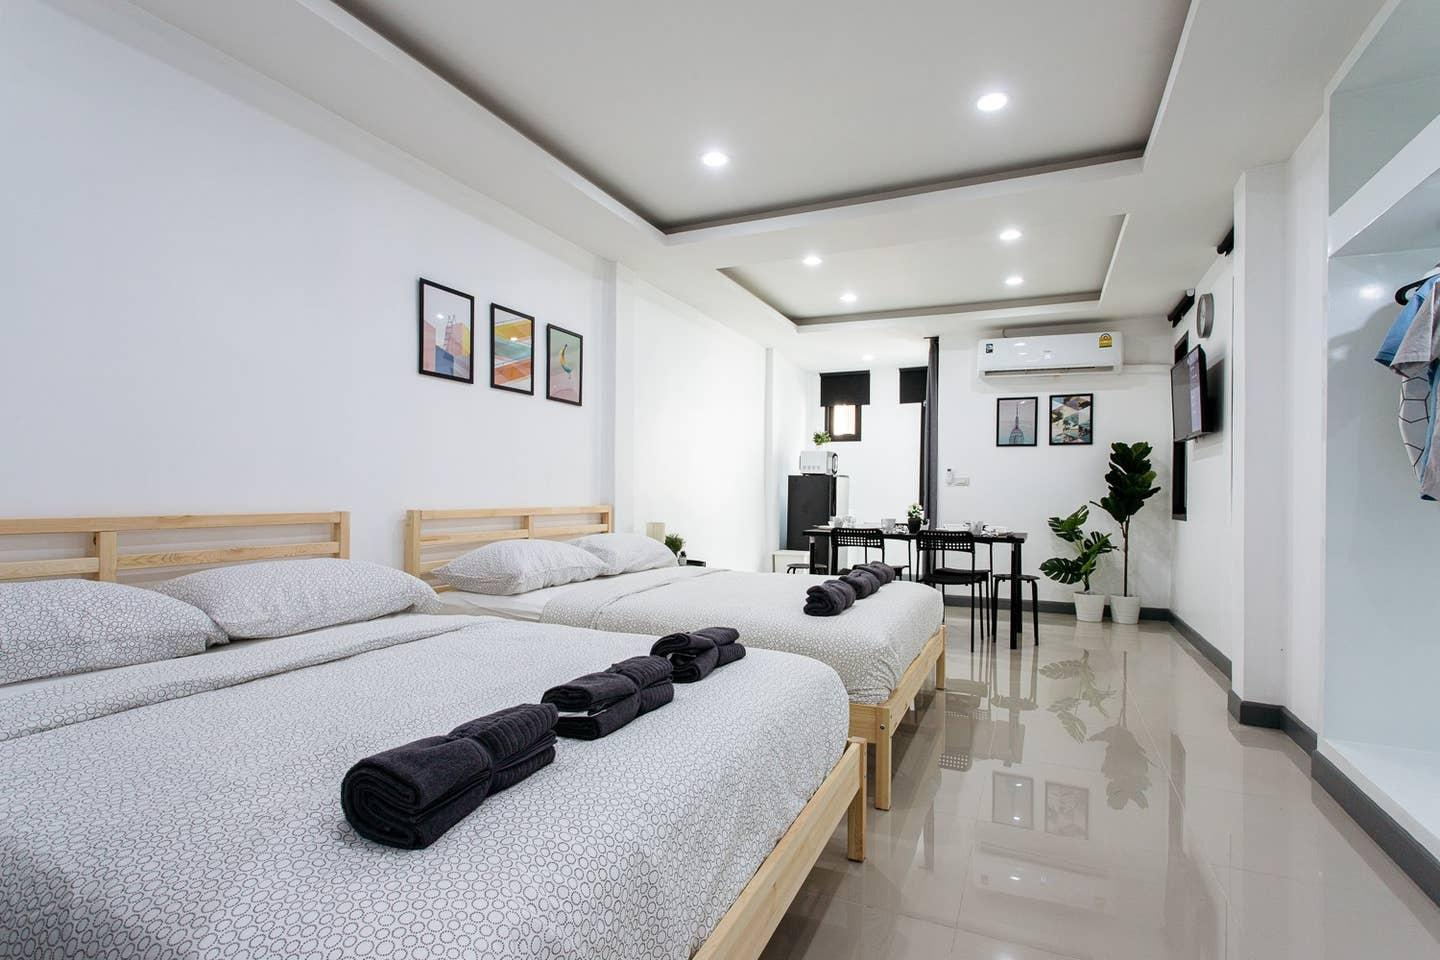 P3 Silom Large 2beds Full Kitchen WIFI 4 6pax